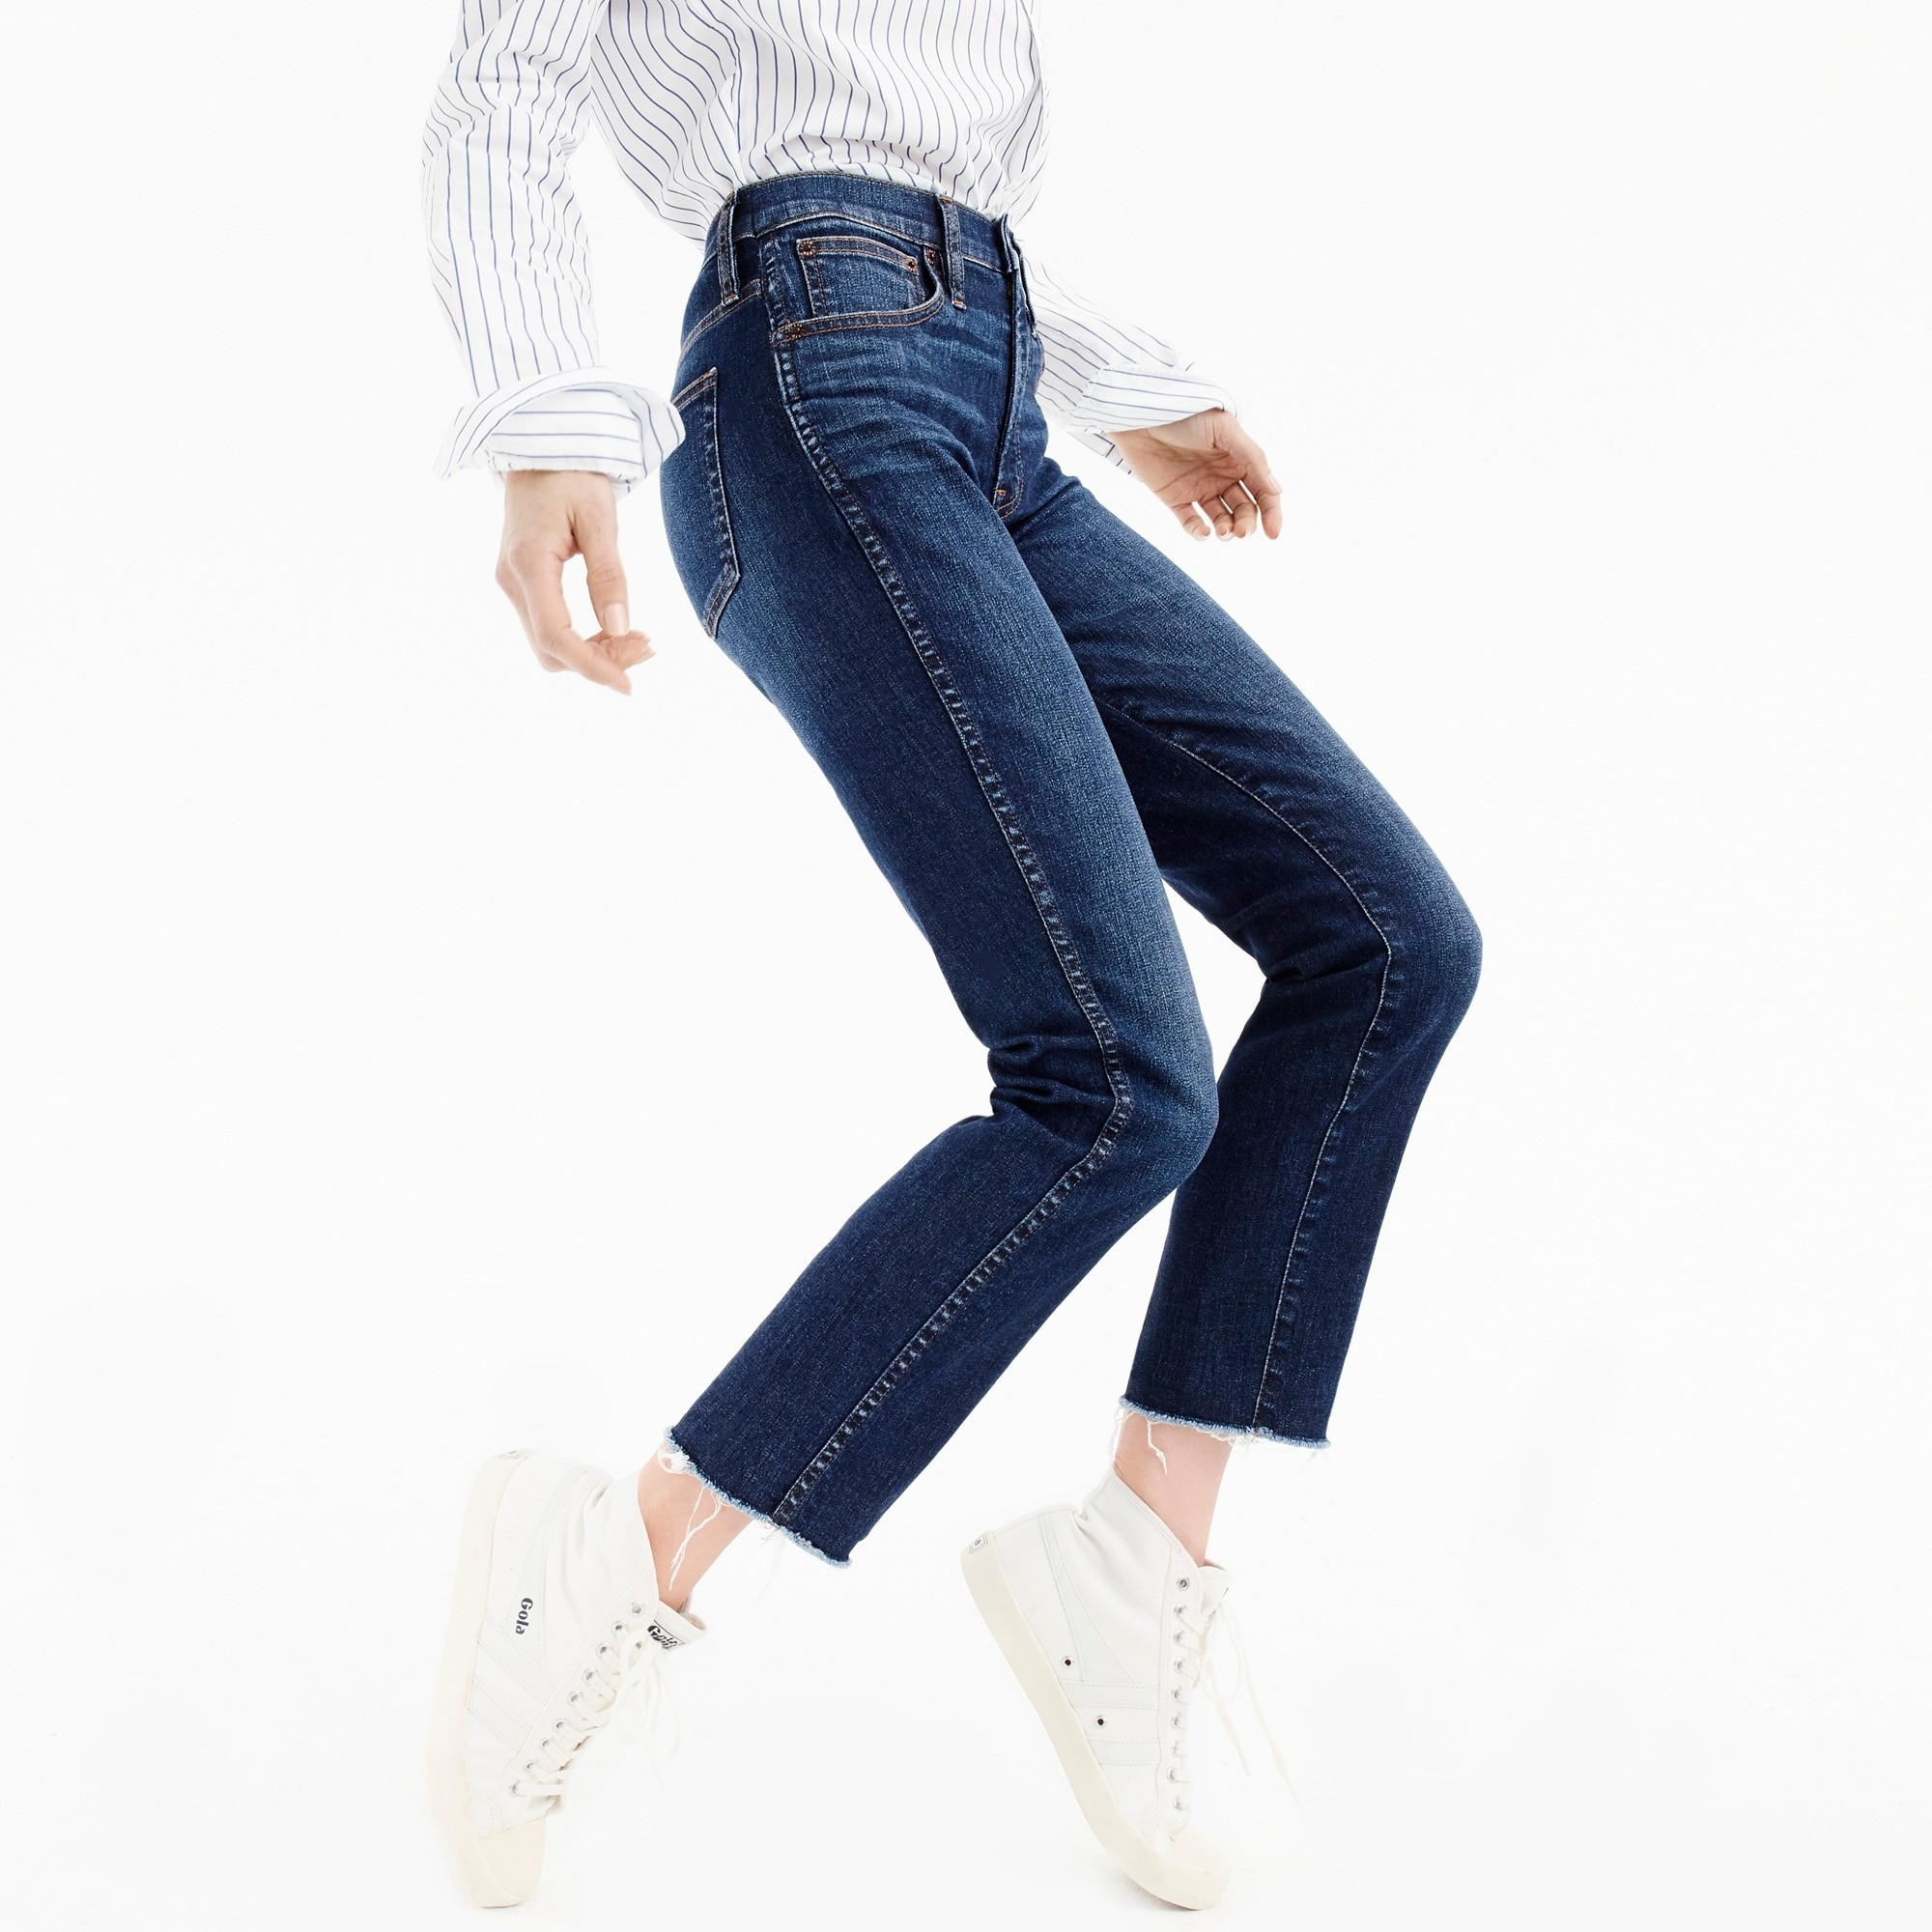 Petite vintage straight jean in Mayville wash with cut hem